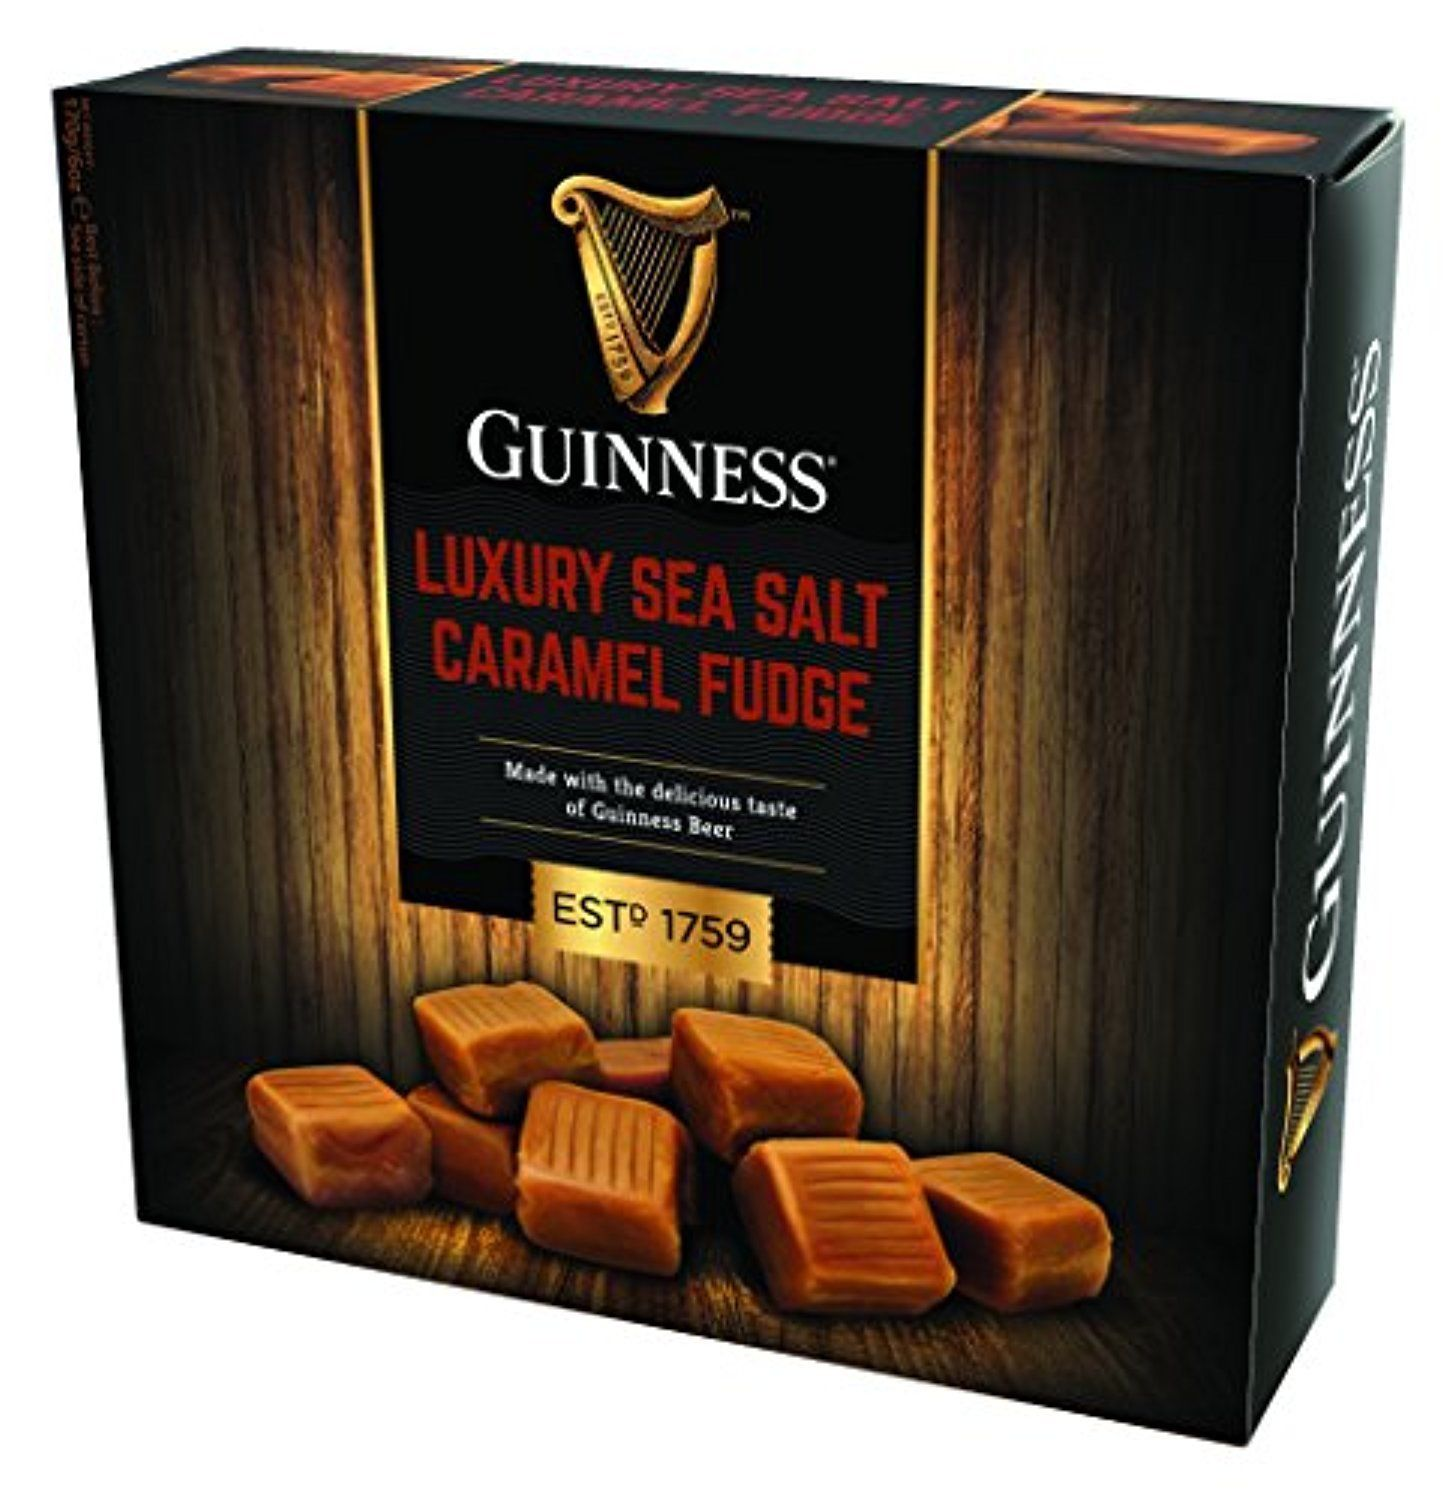 Guinness Luxury Sea Salt Caramel Fudge (170g/6.2 oz)